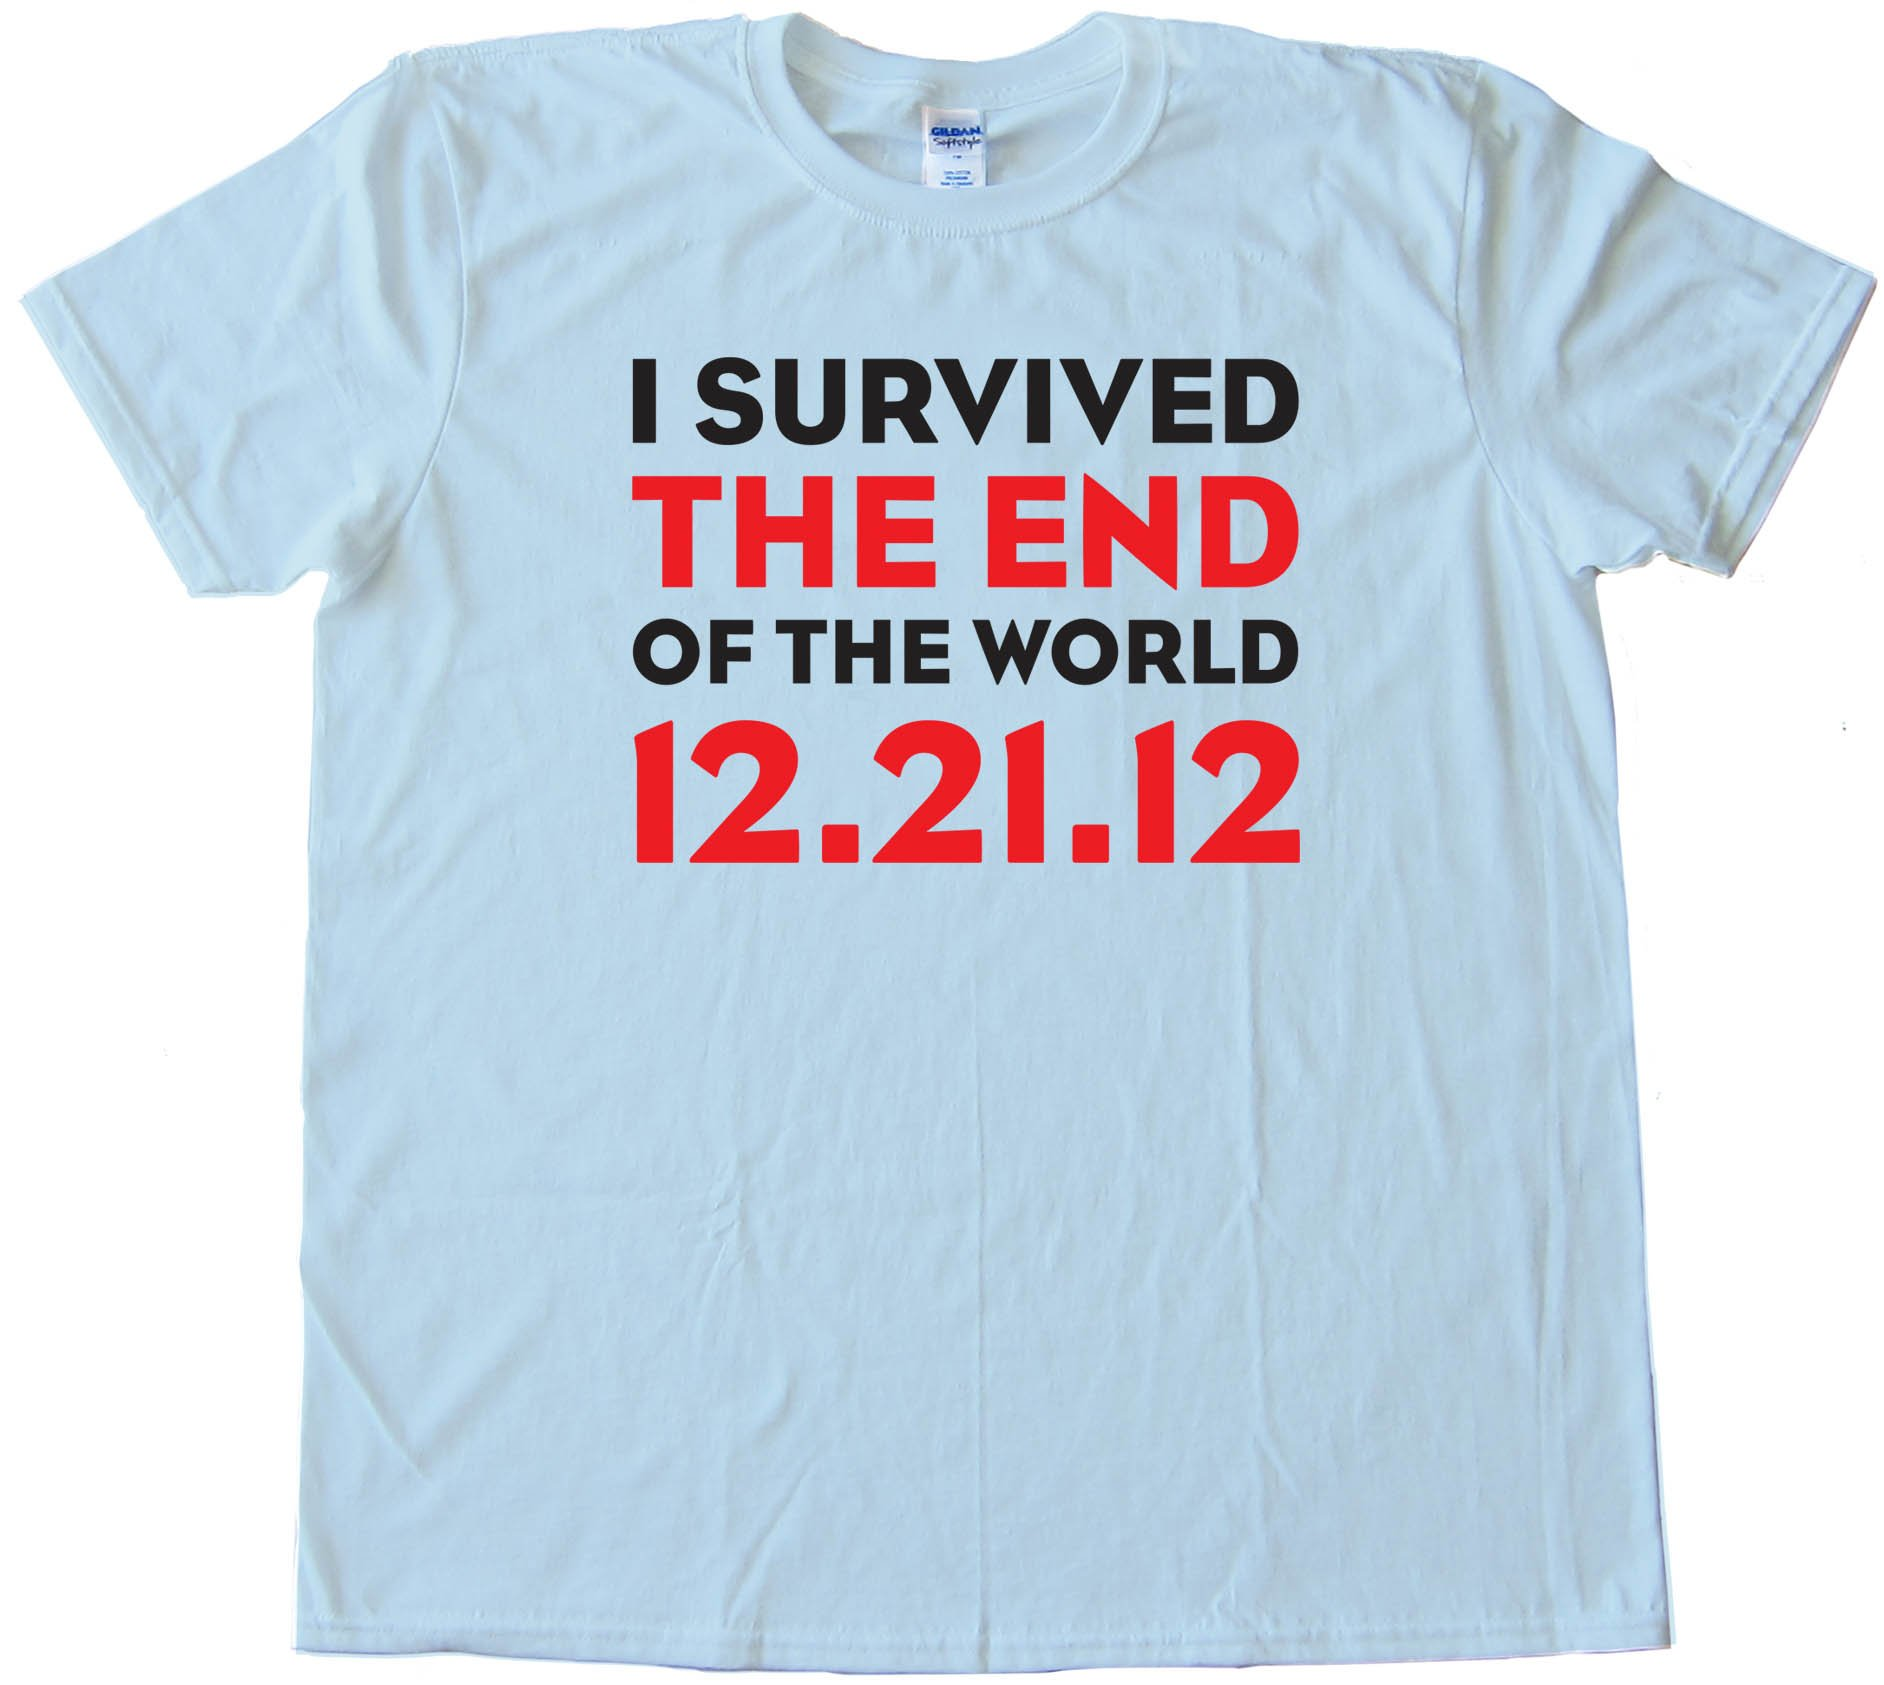 I Survived The End Of The World 12.21.12 - Mayan Apocalypse - Tee Shirt